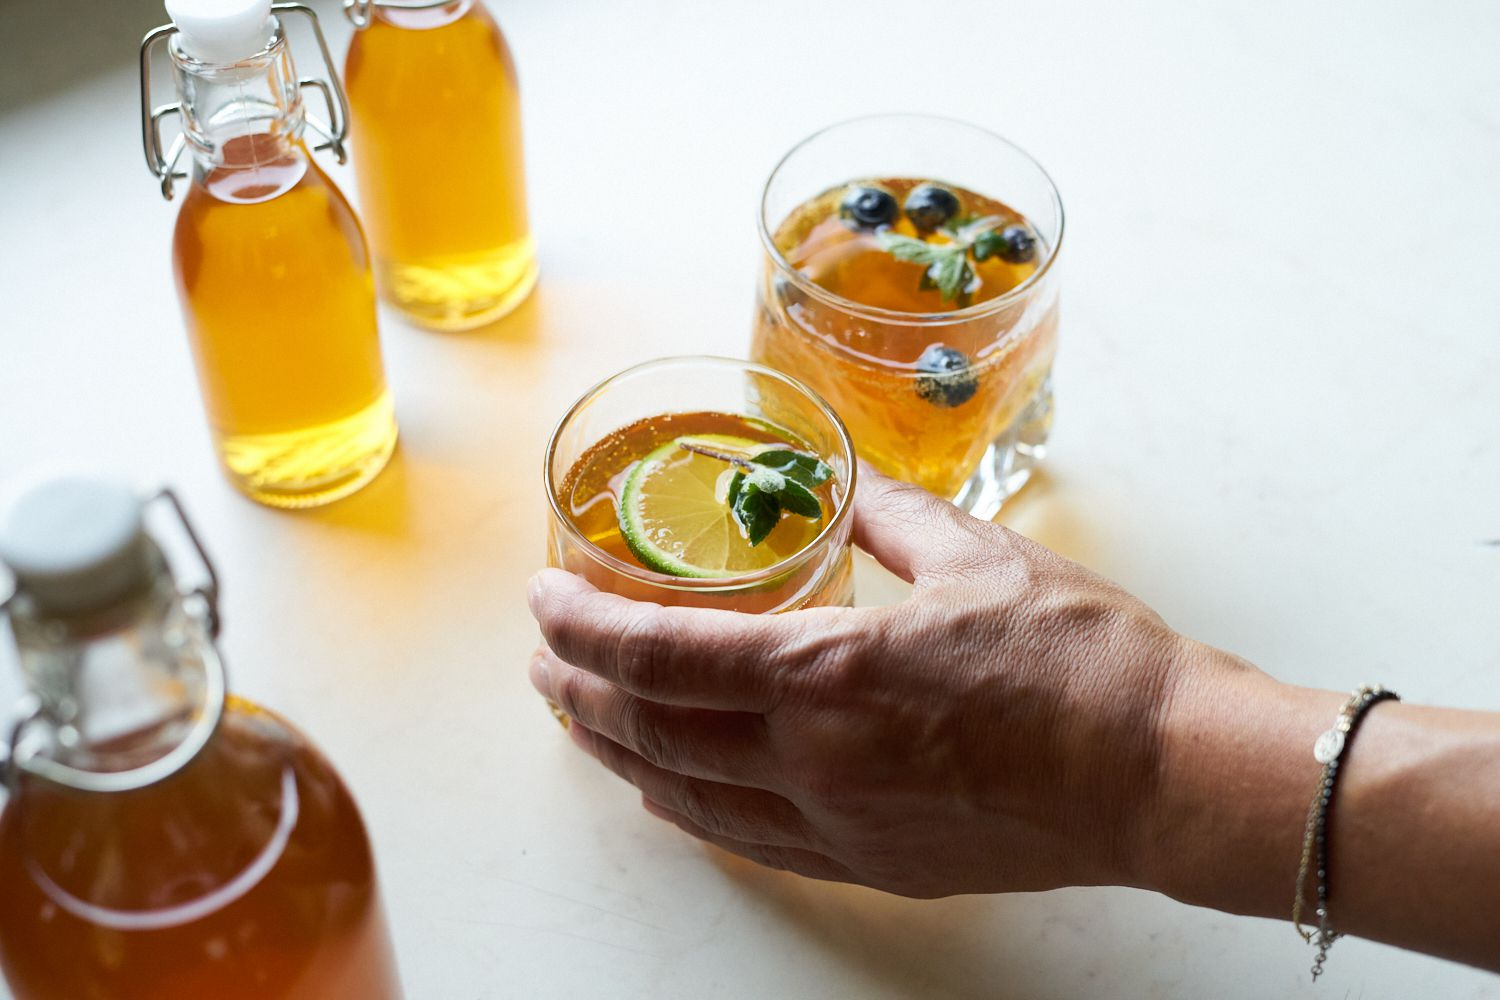 hand reaches for glass of homemade kombucha with lime and berries next to sealed bottles